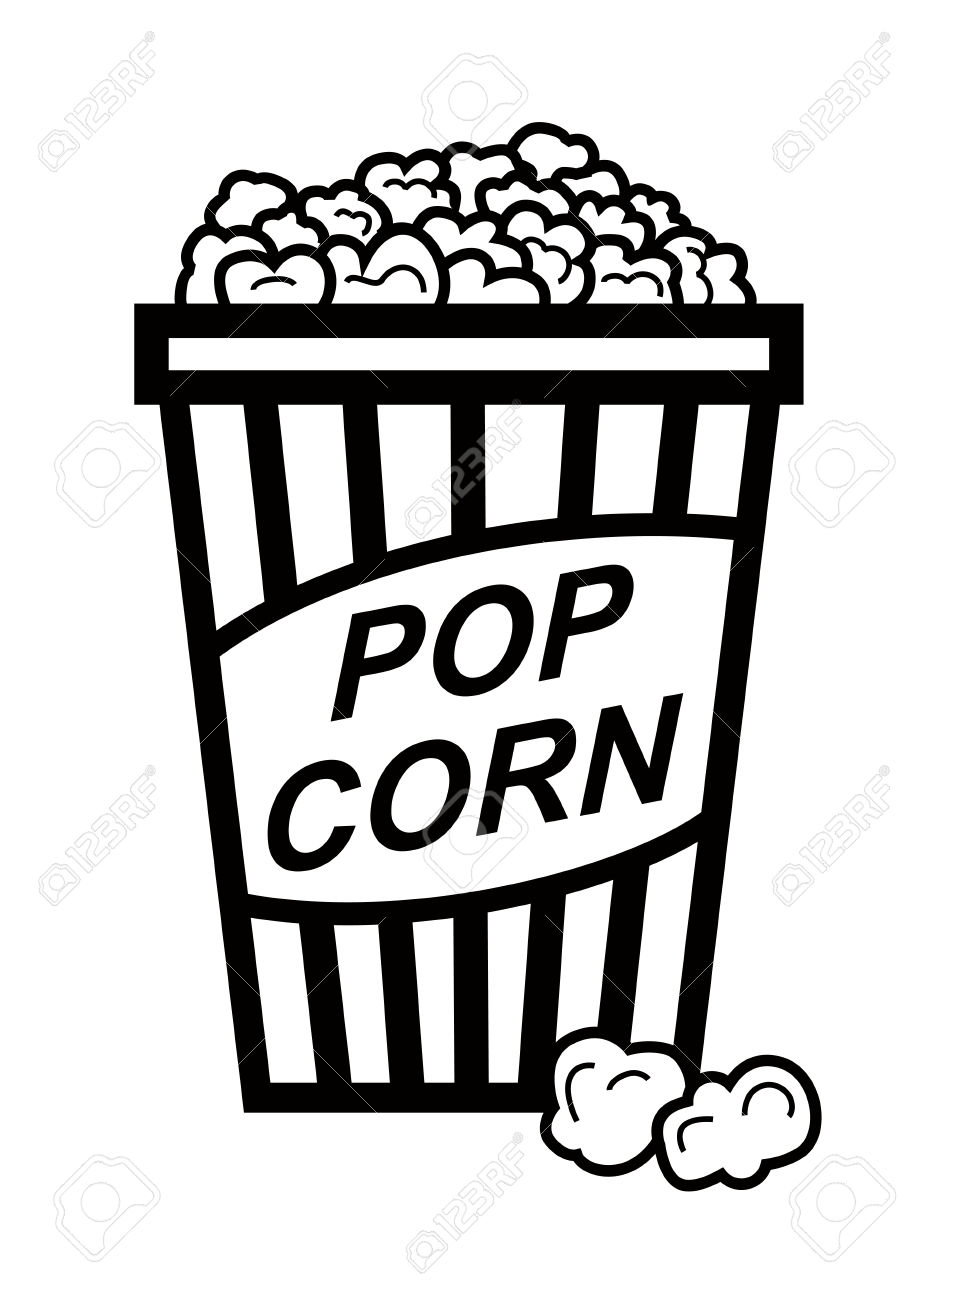 Popcorn clipart black and white #14